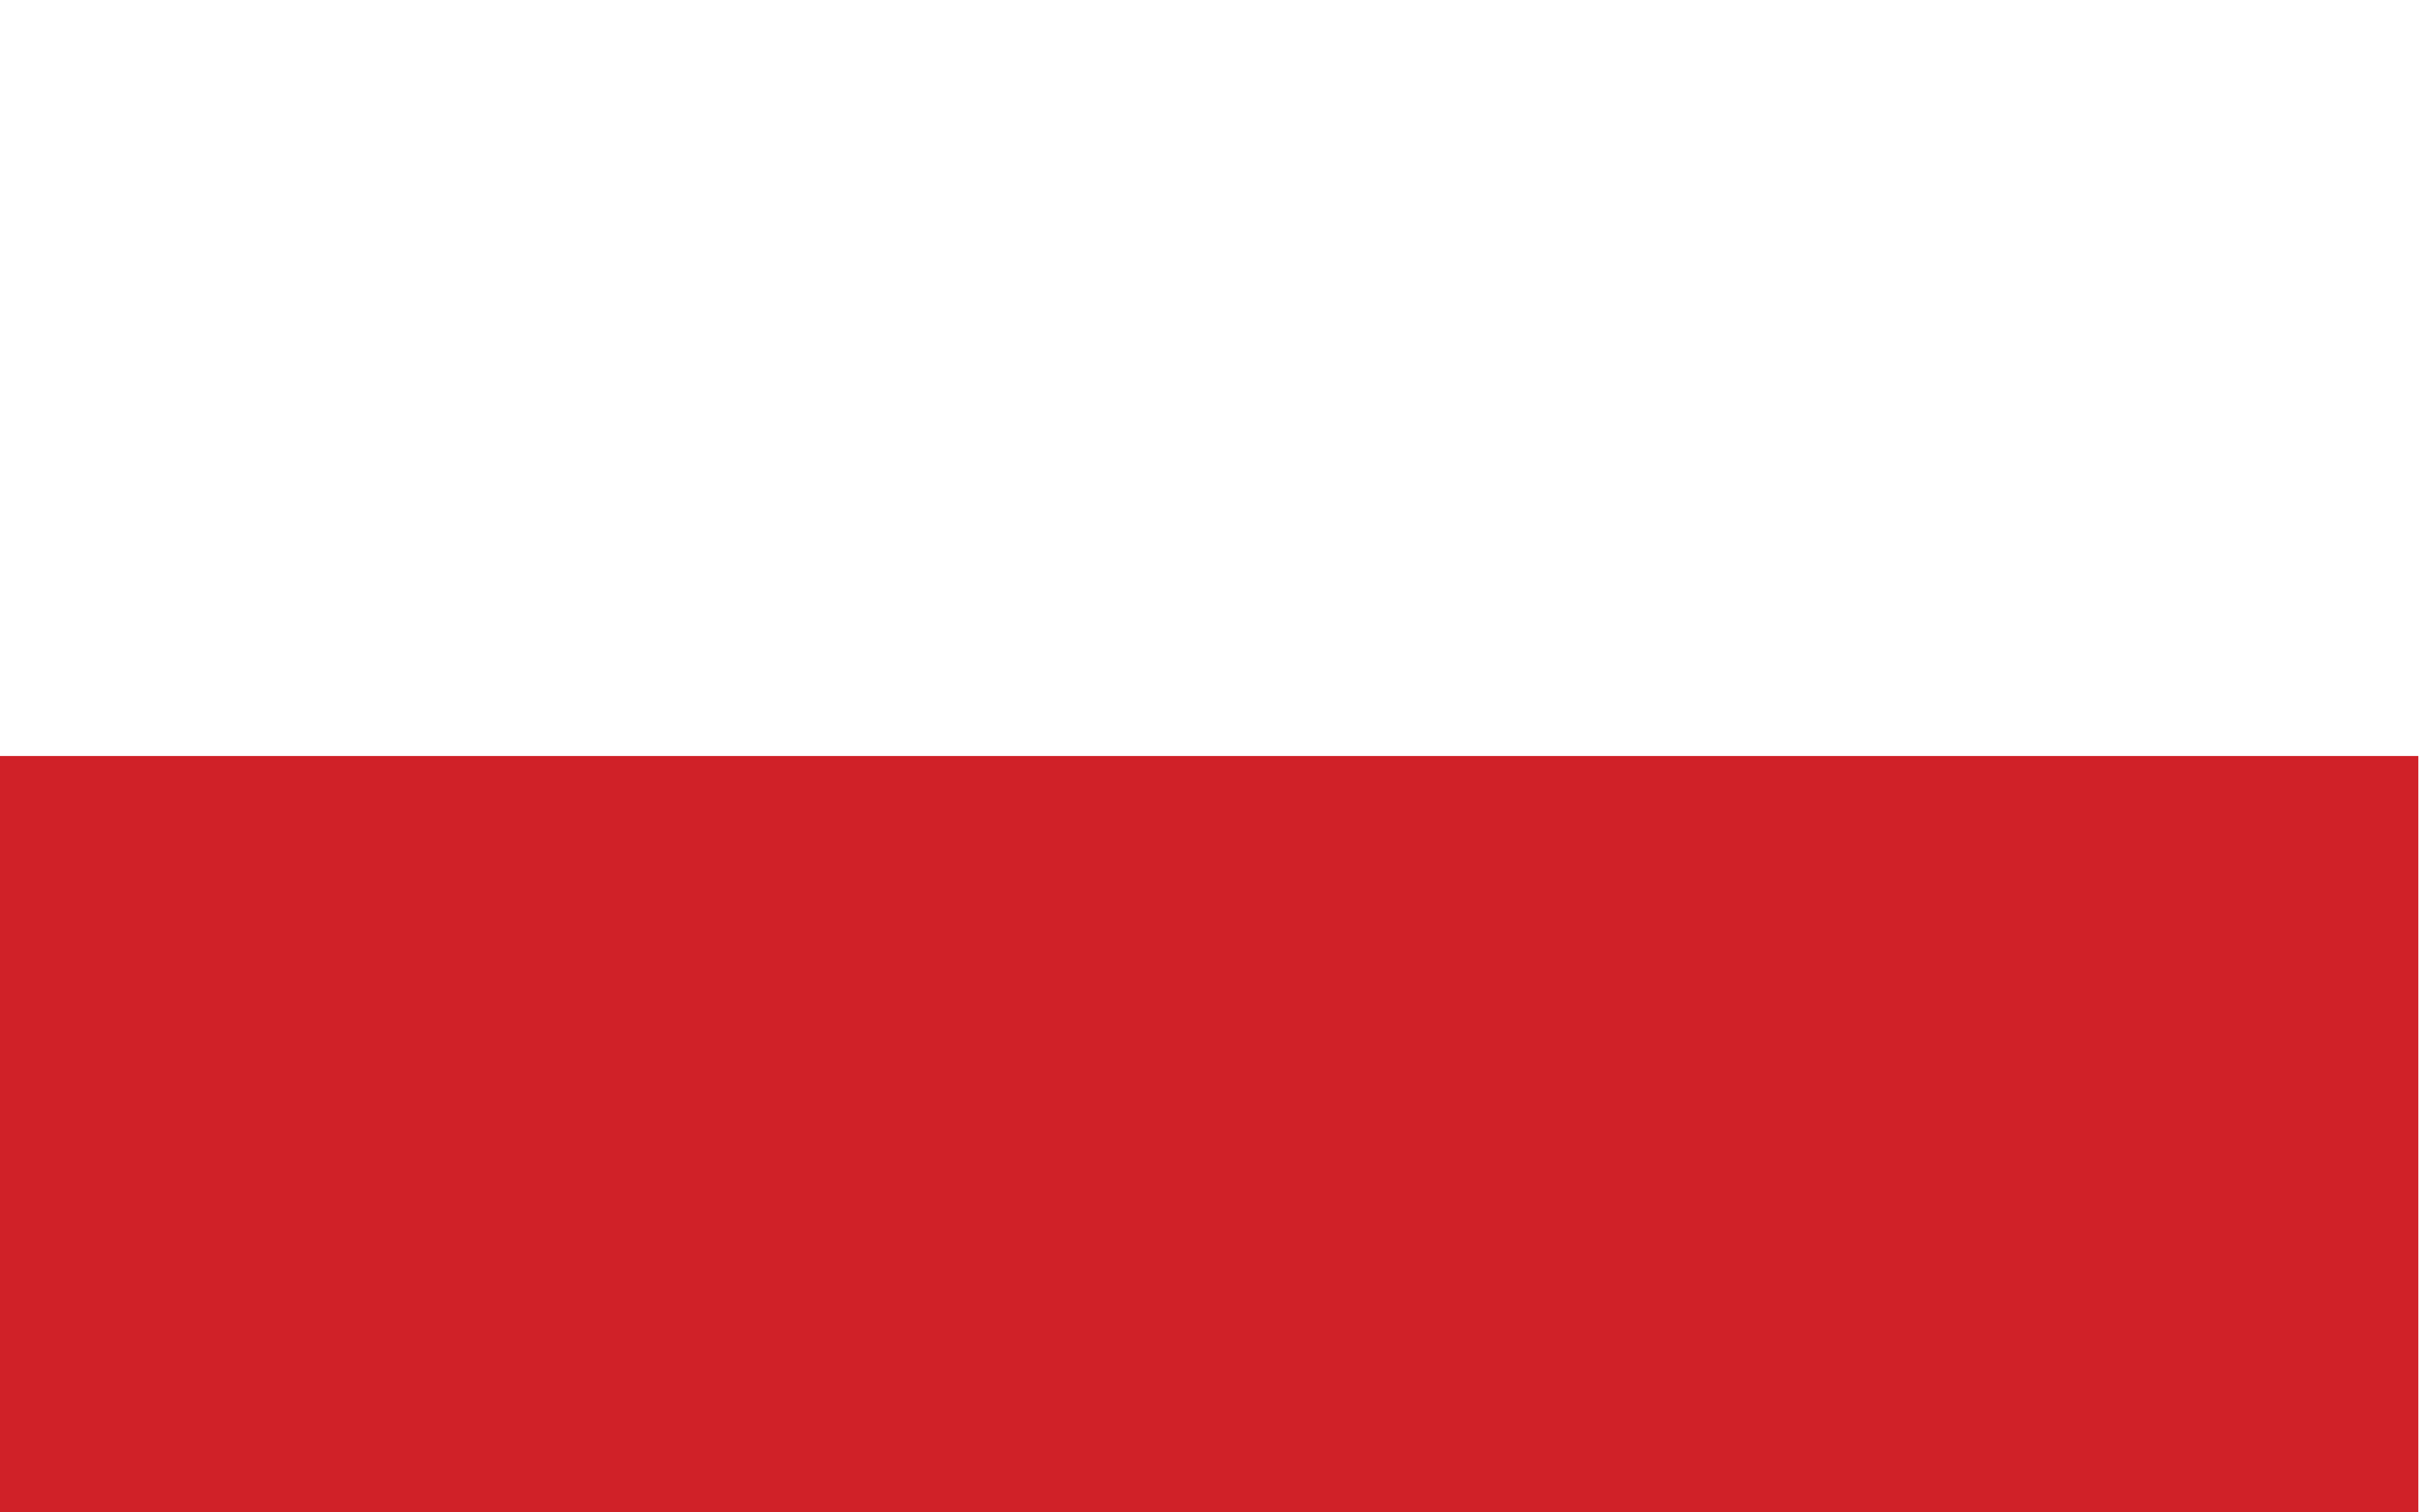 The current design of the Polish flag was adopted on January 31, 1980.